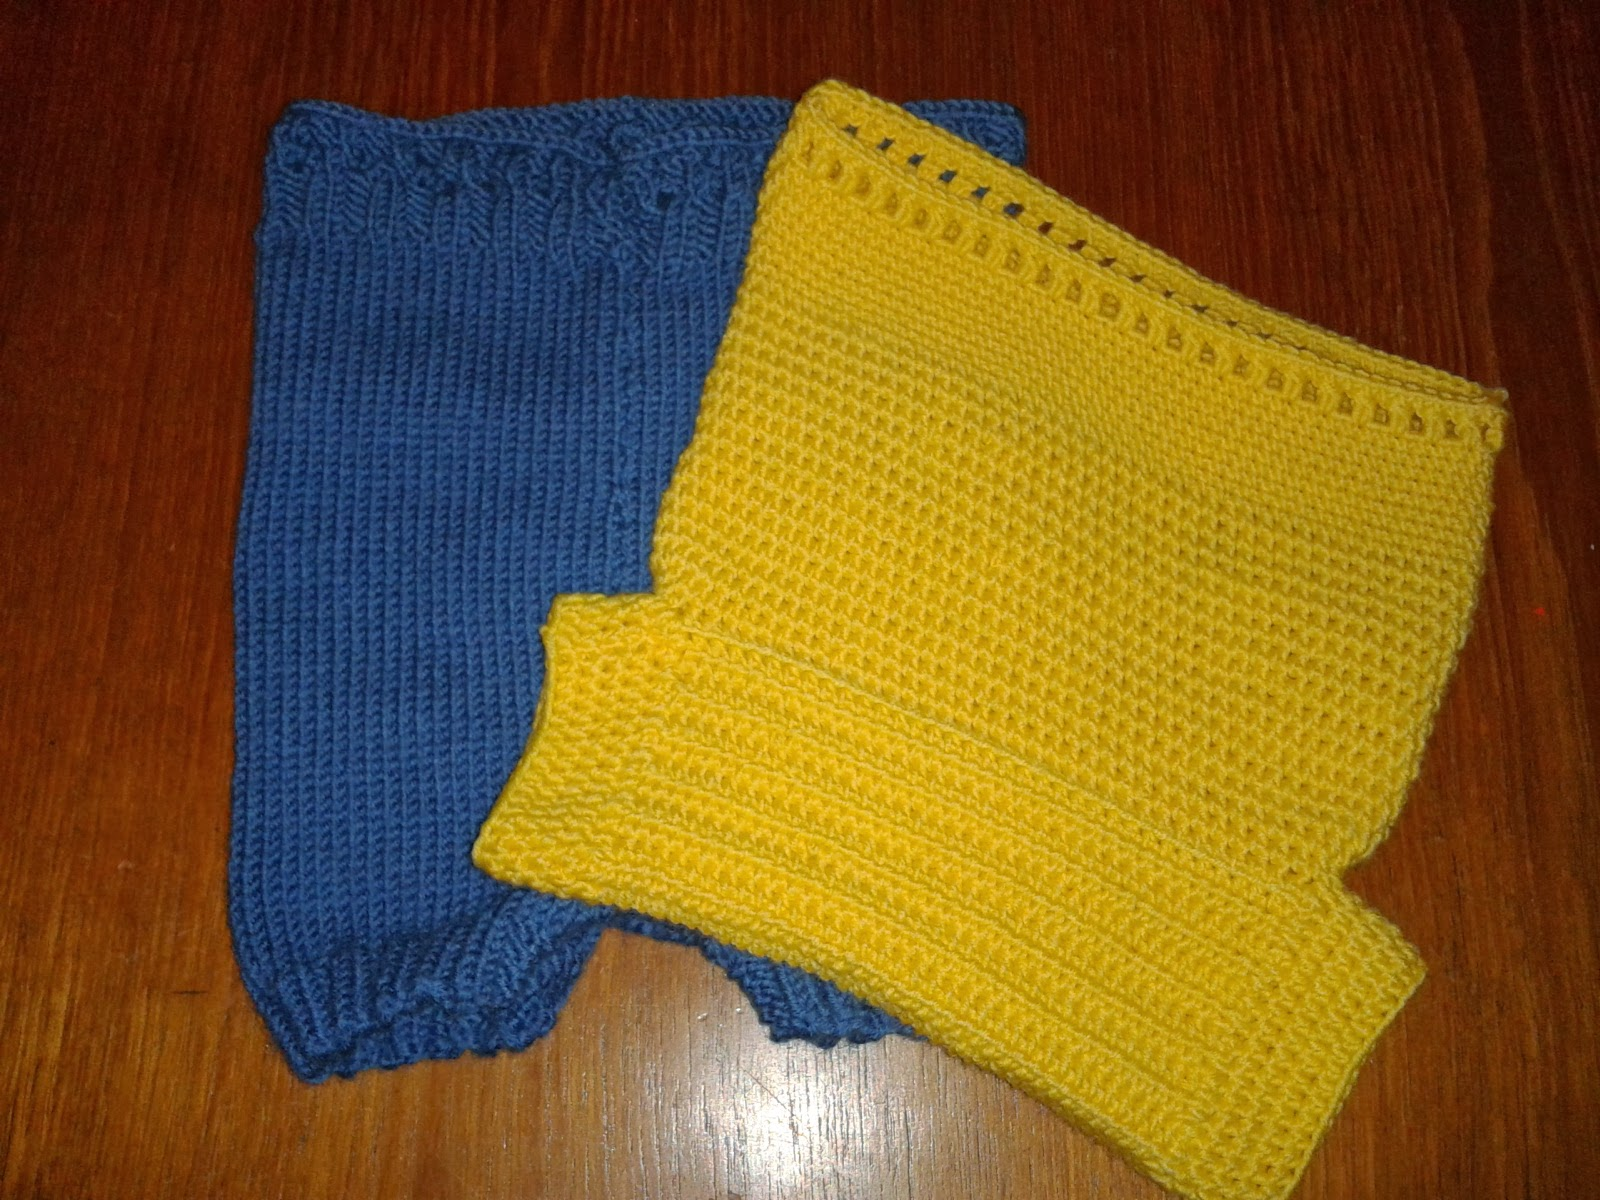 Two woollen nappy covers one blue one yellow